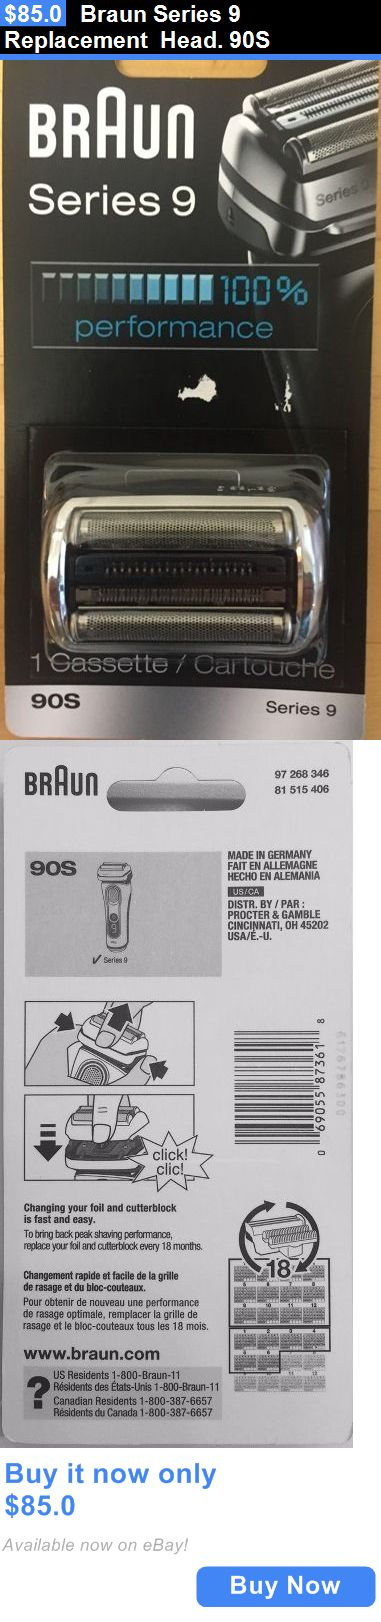 Shaver Parts and Accessories: Braun Series 9 Replacement Head. 90S BUY IT NOW ONLY: $85.0